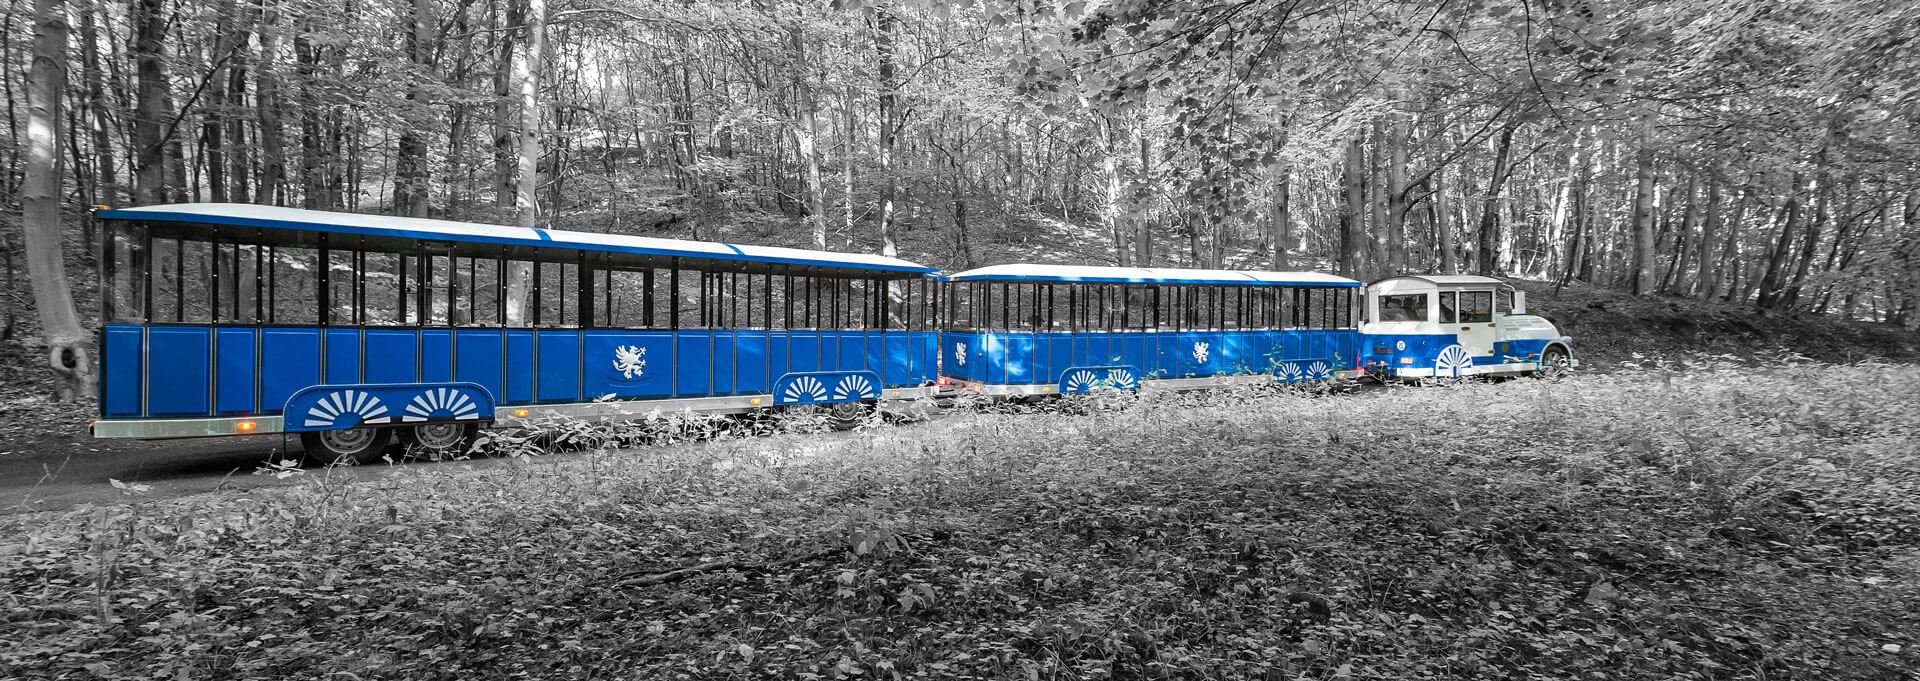 Sightseeing Trains Header Image